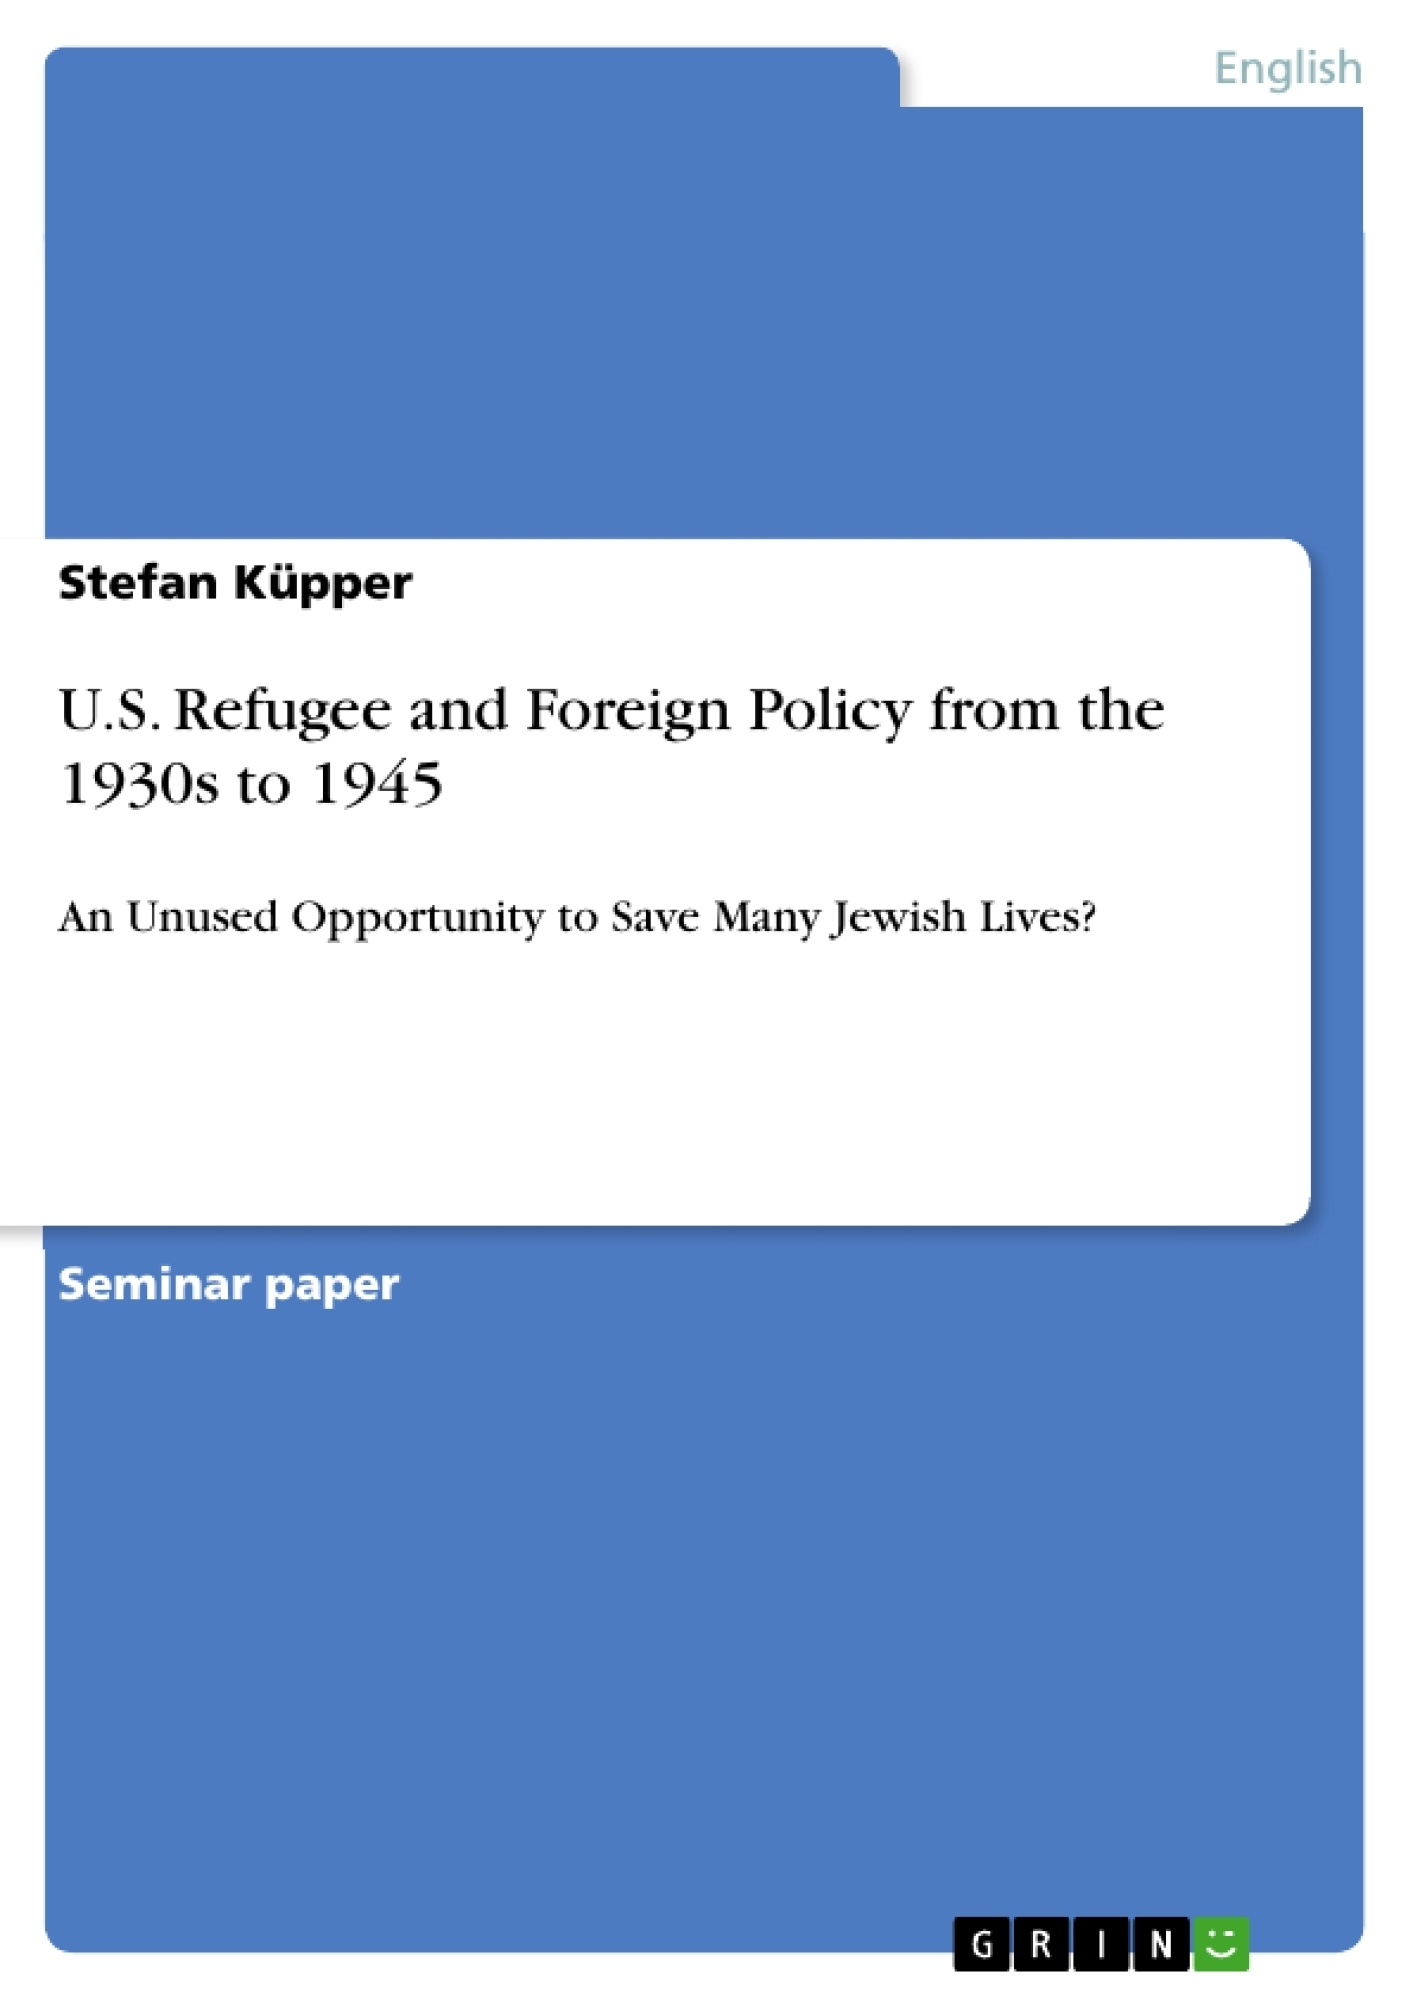 Title: U.S. Refugee and Foreign Policy from the 1930s to 1945